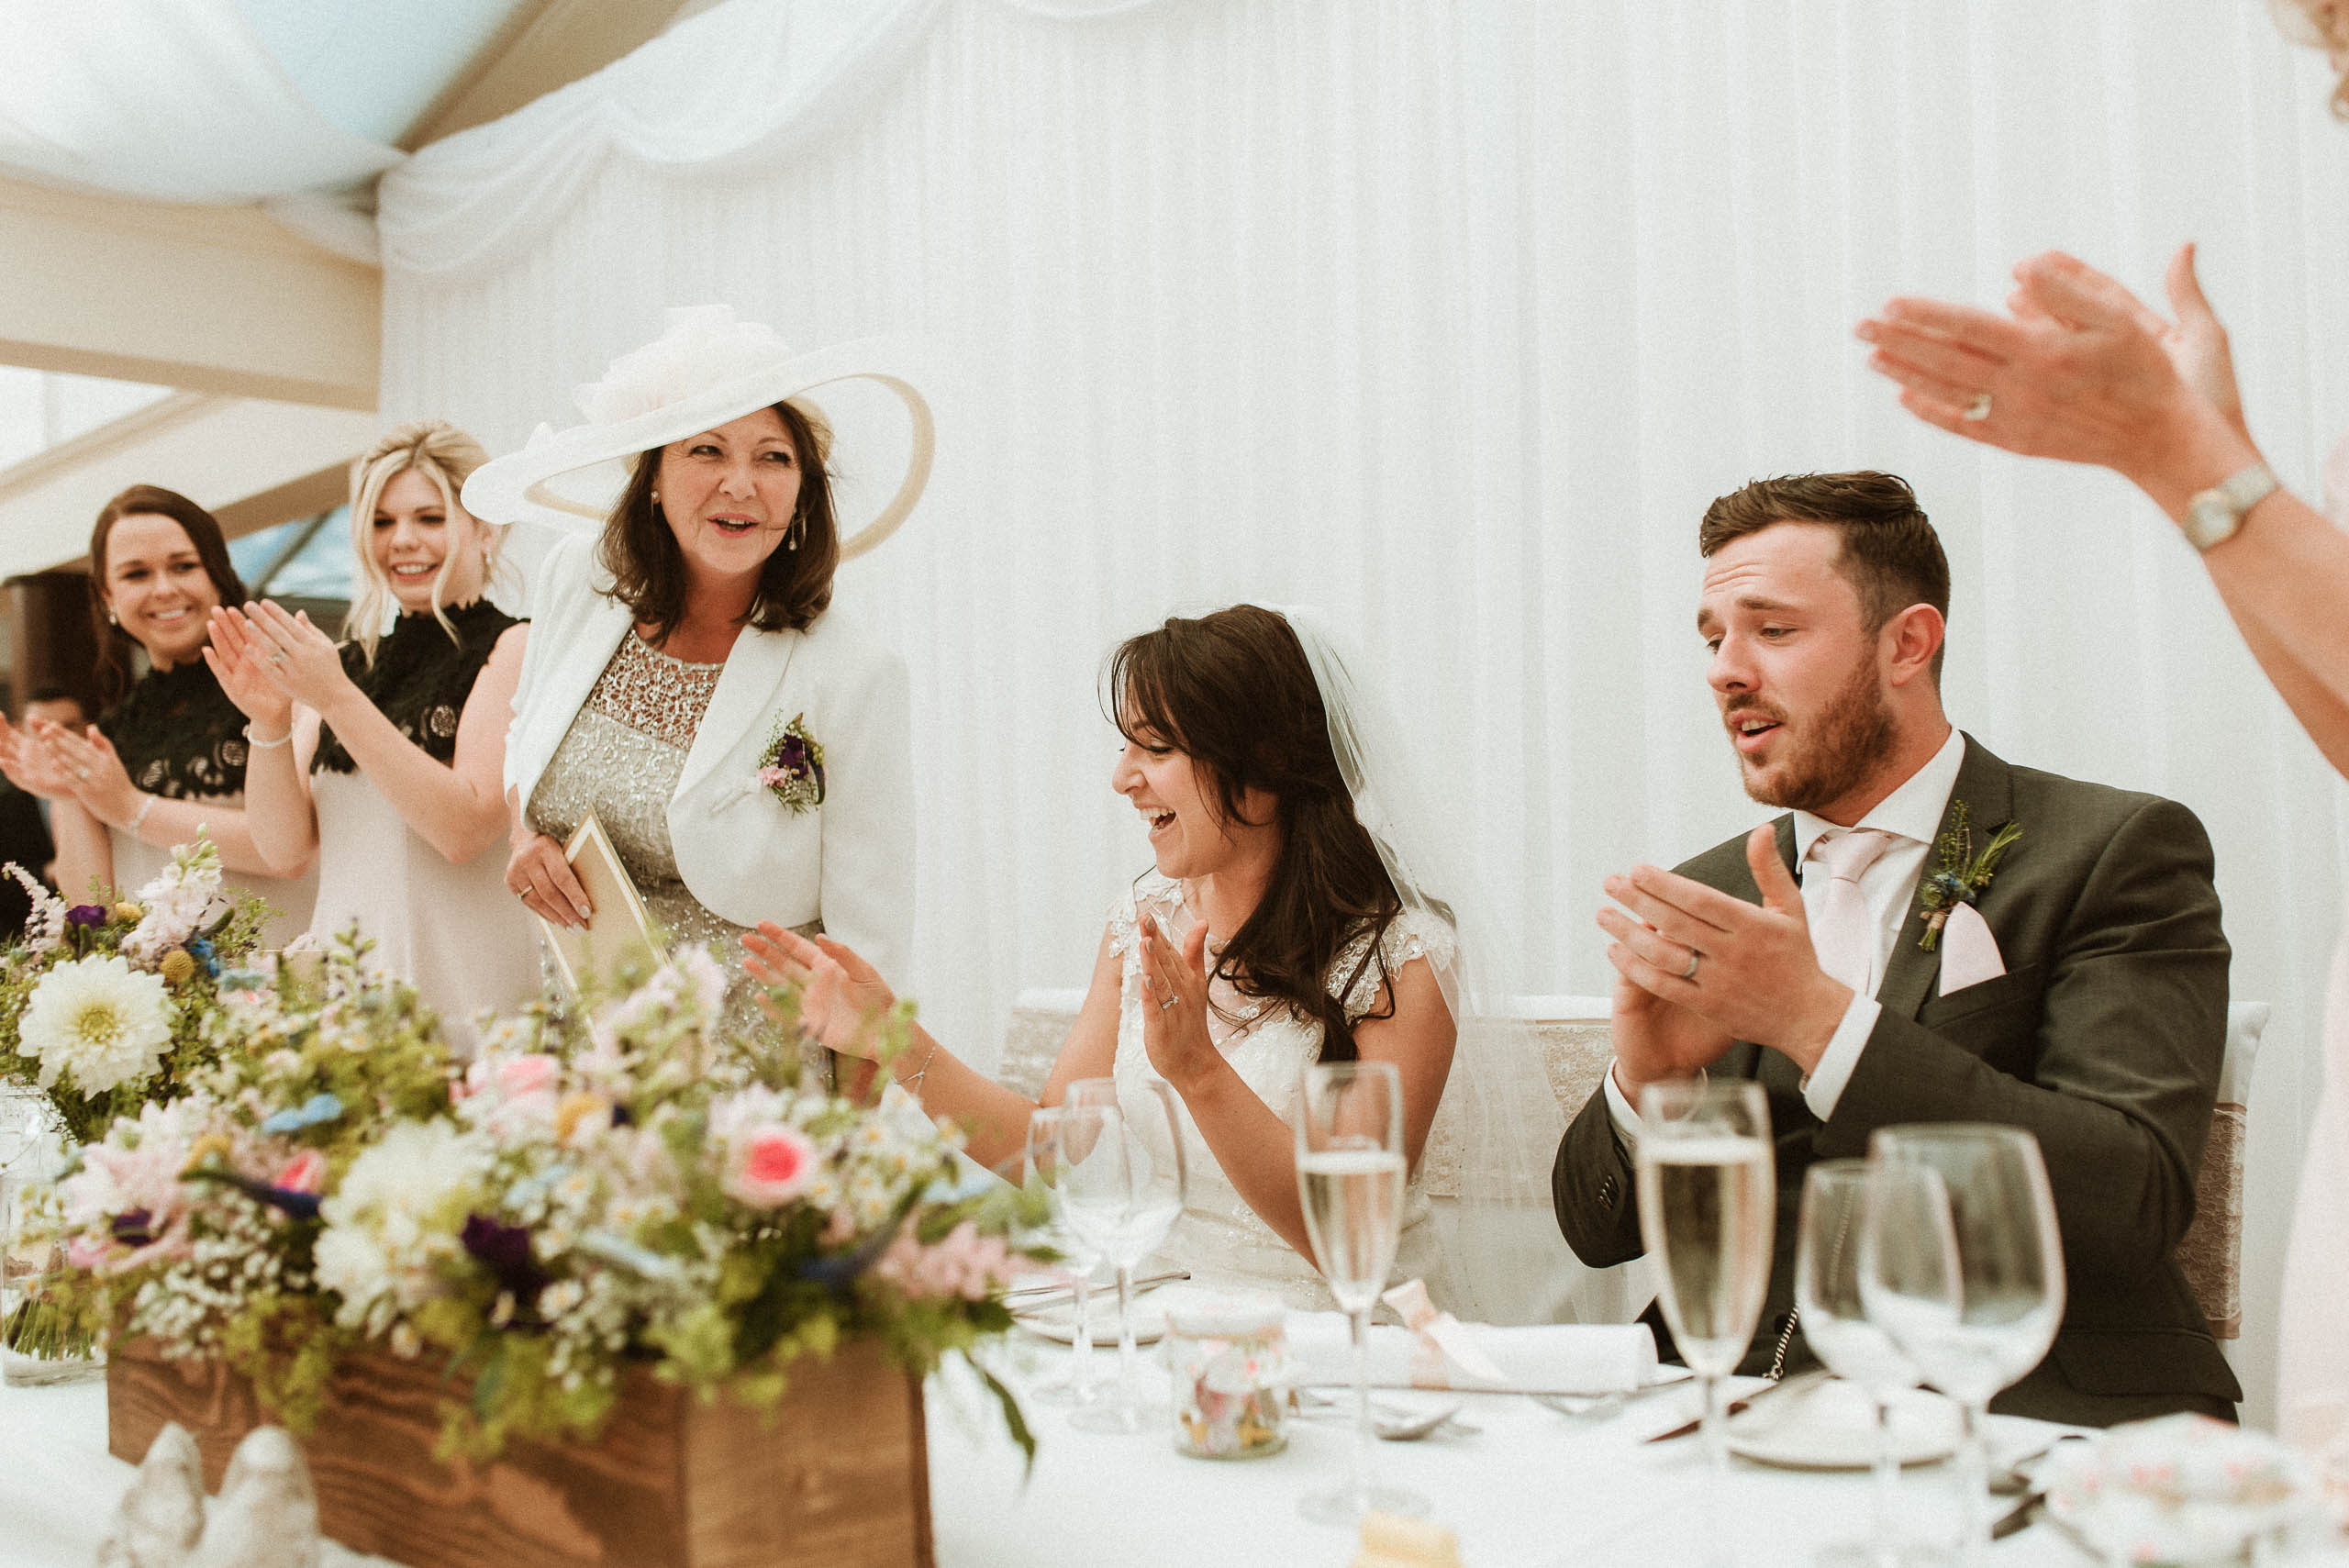 guests applaud bride and groom as they sit down at head table